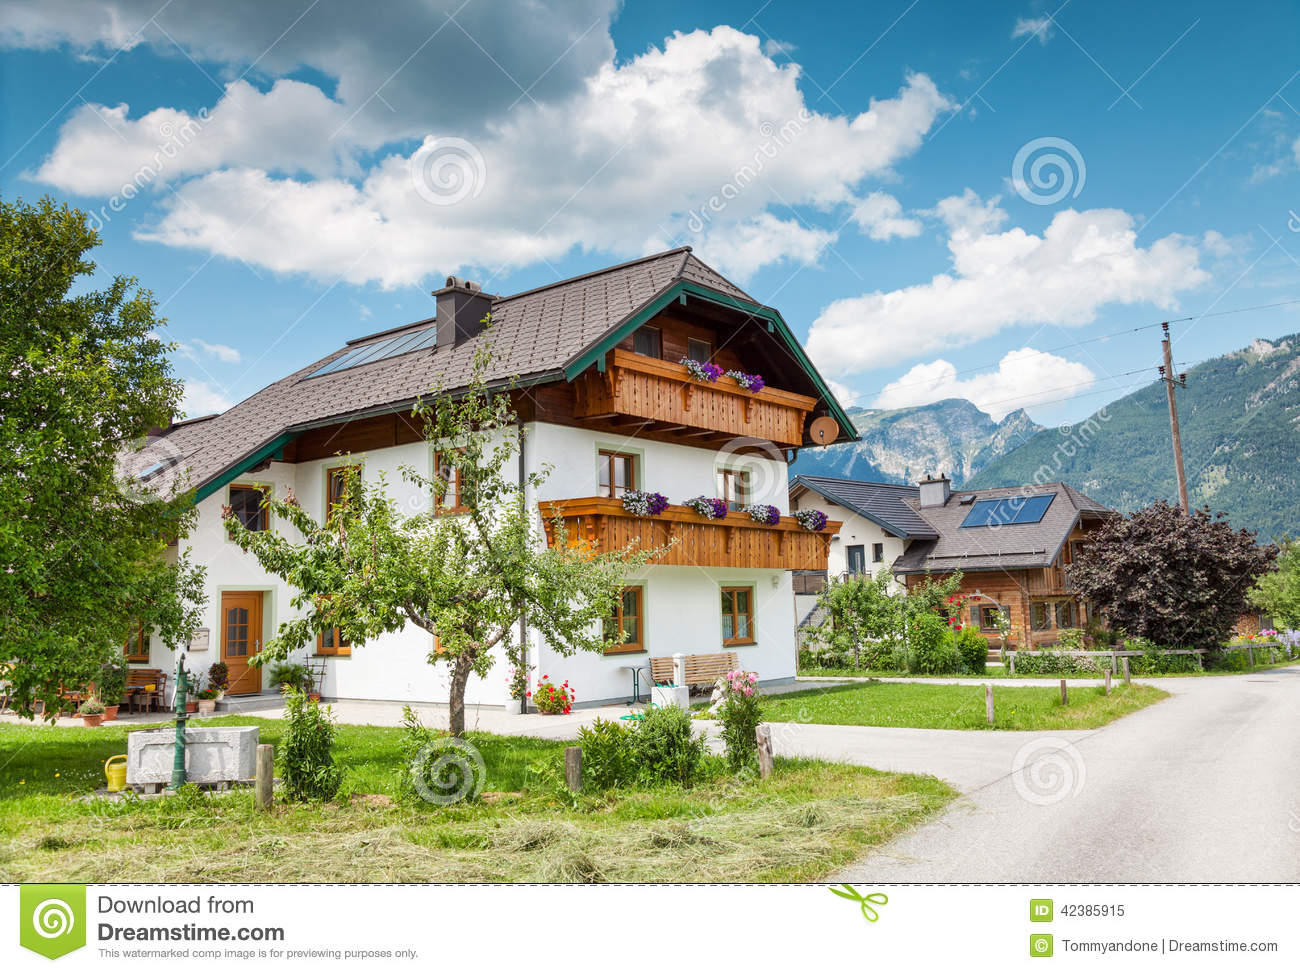 Vacation Cottage Plans Traditional Alpine House In The Mountains Stock Photo